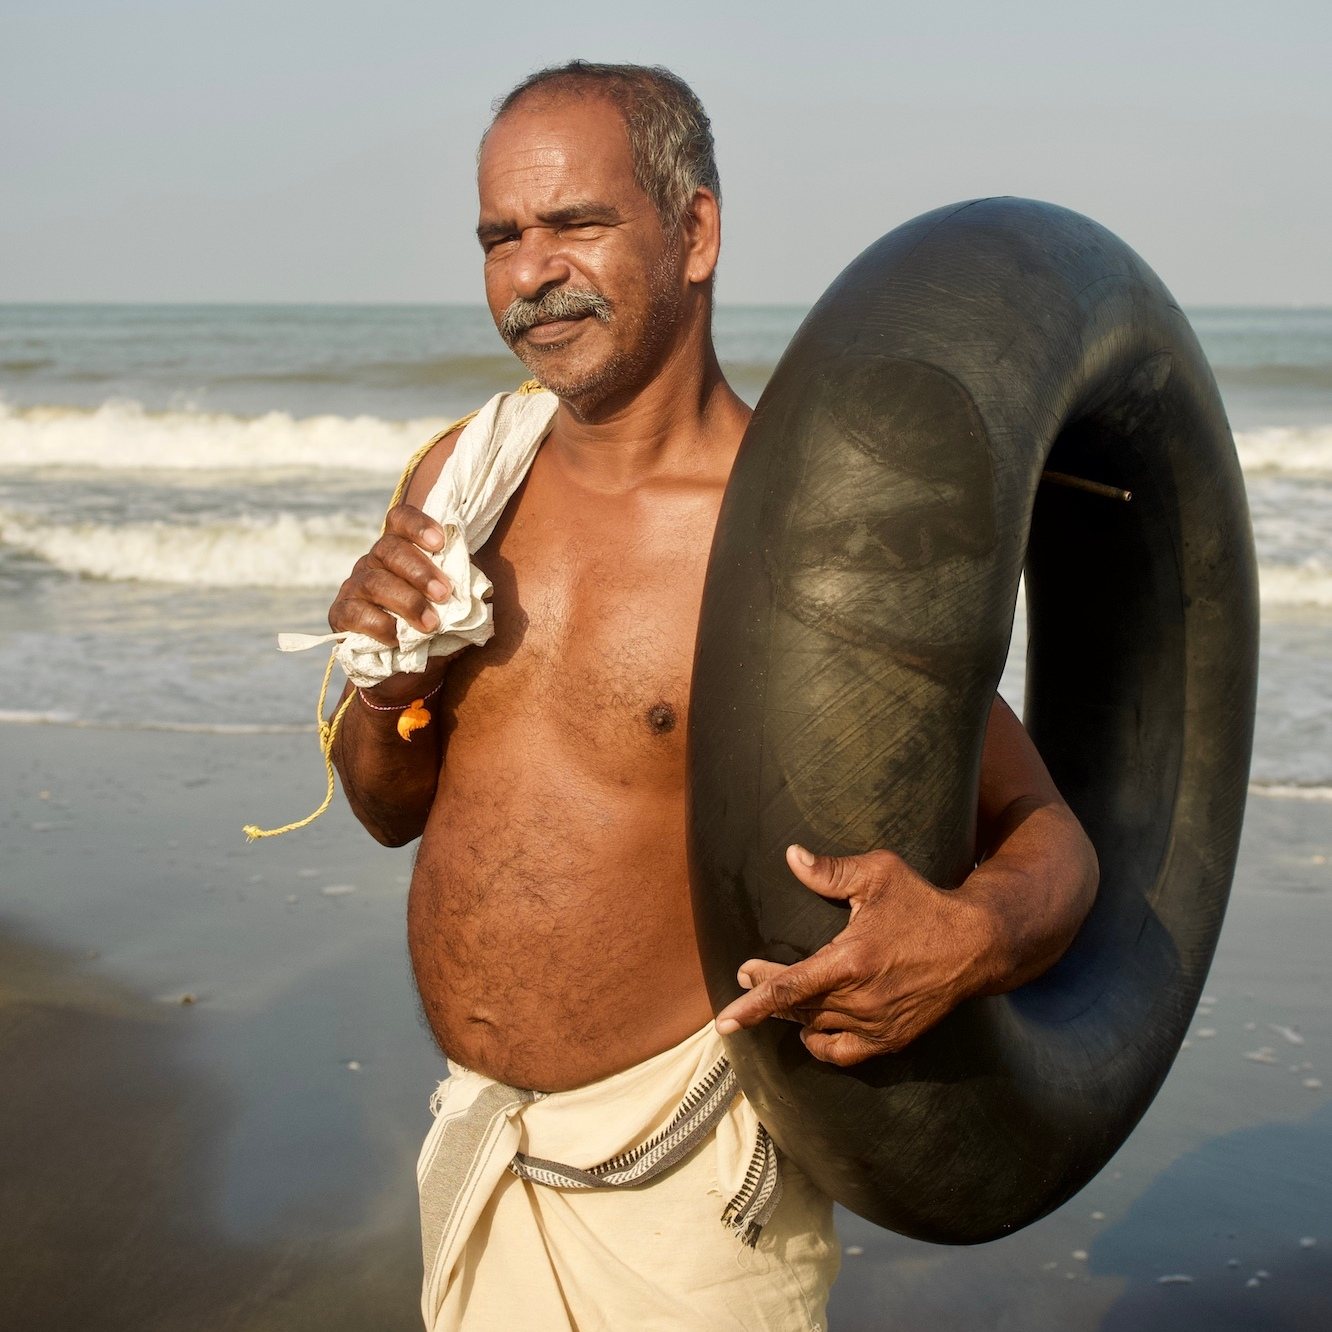 Fisherman by the beach, holding a tyre.